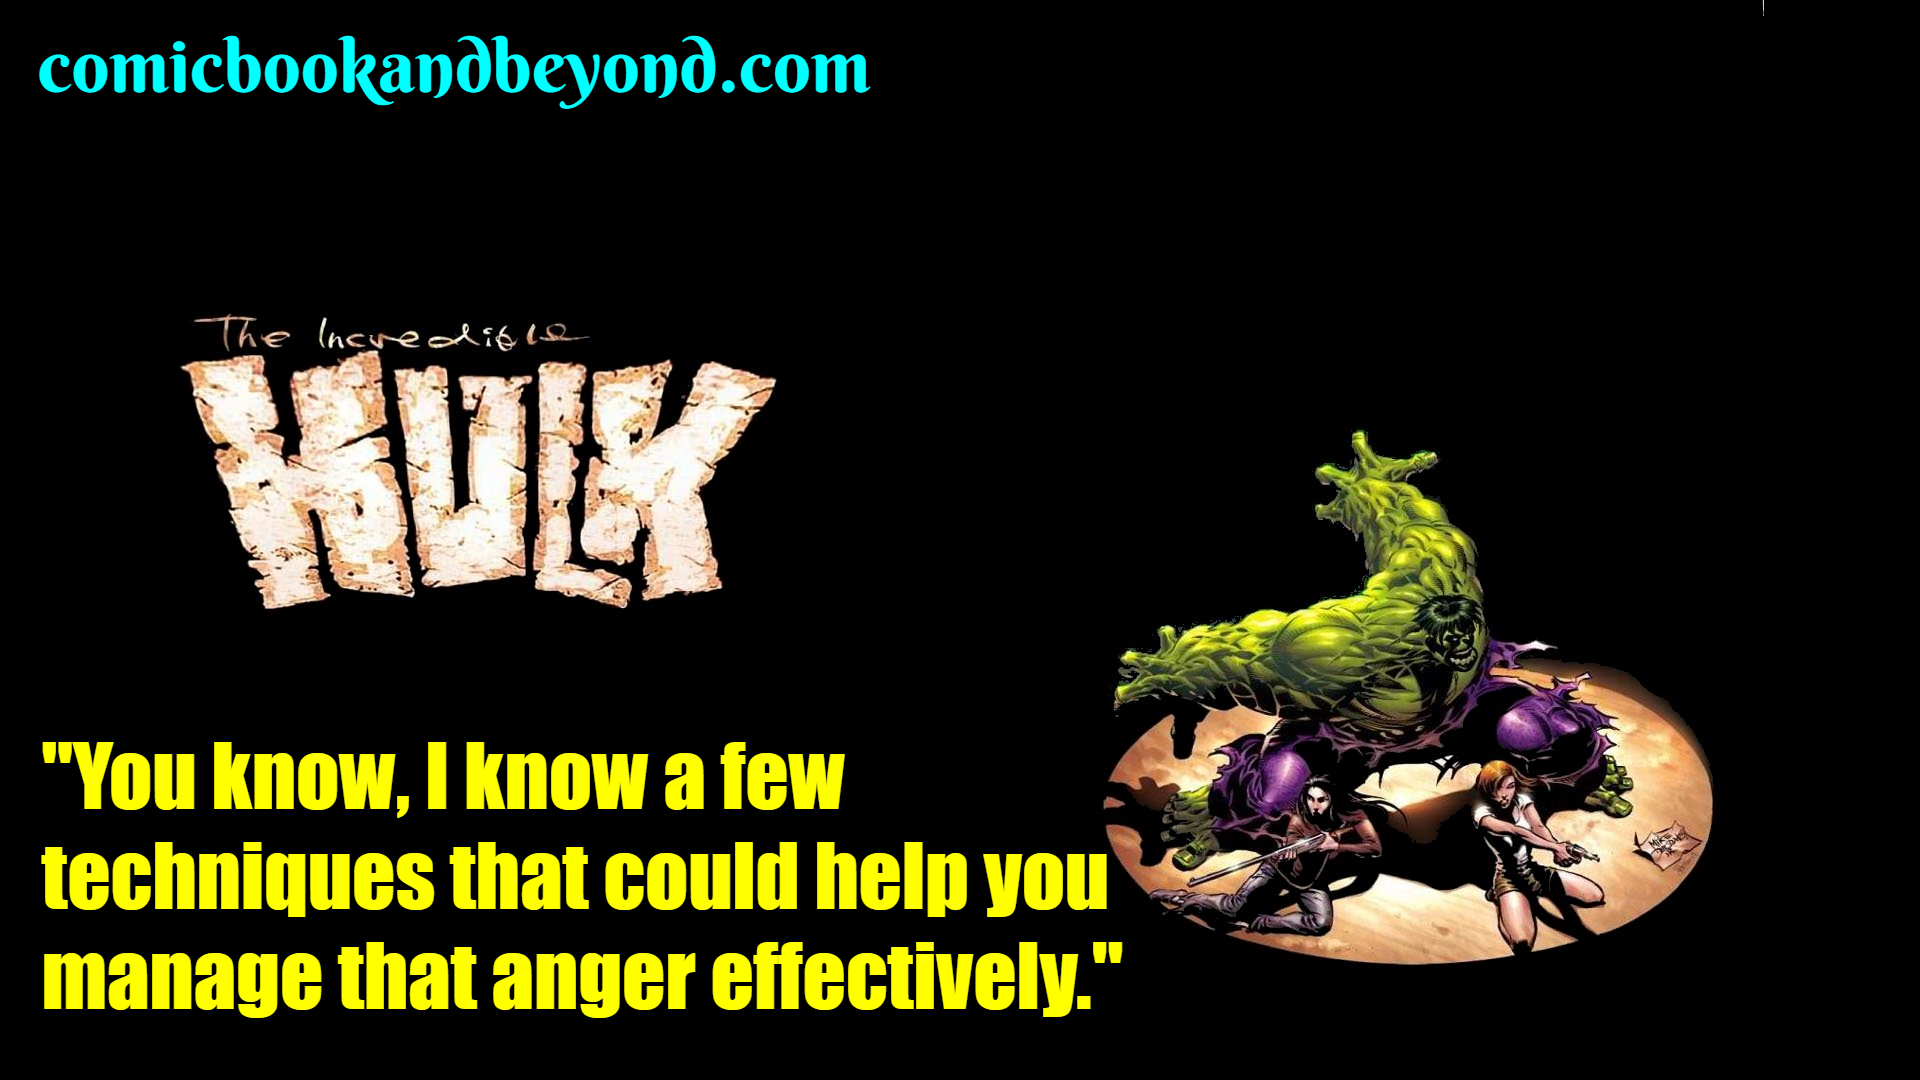 The Incredible Hulk saying